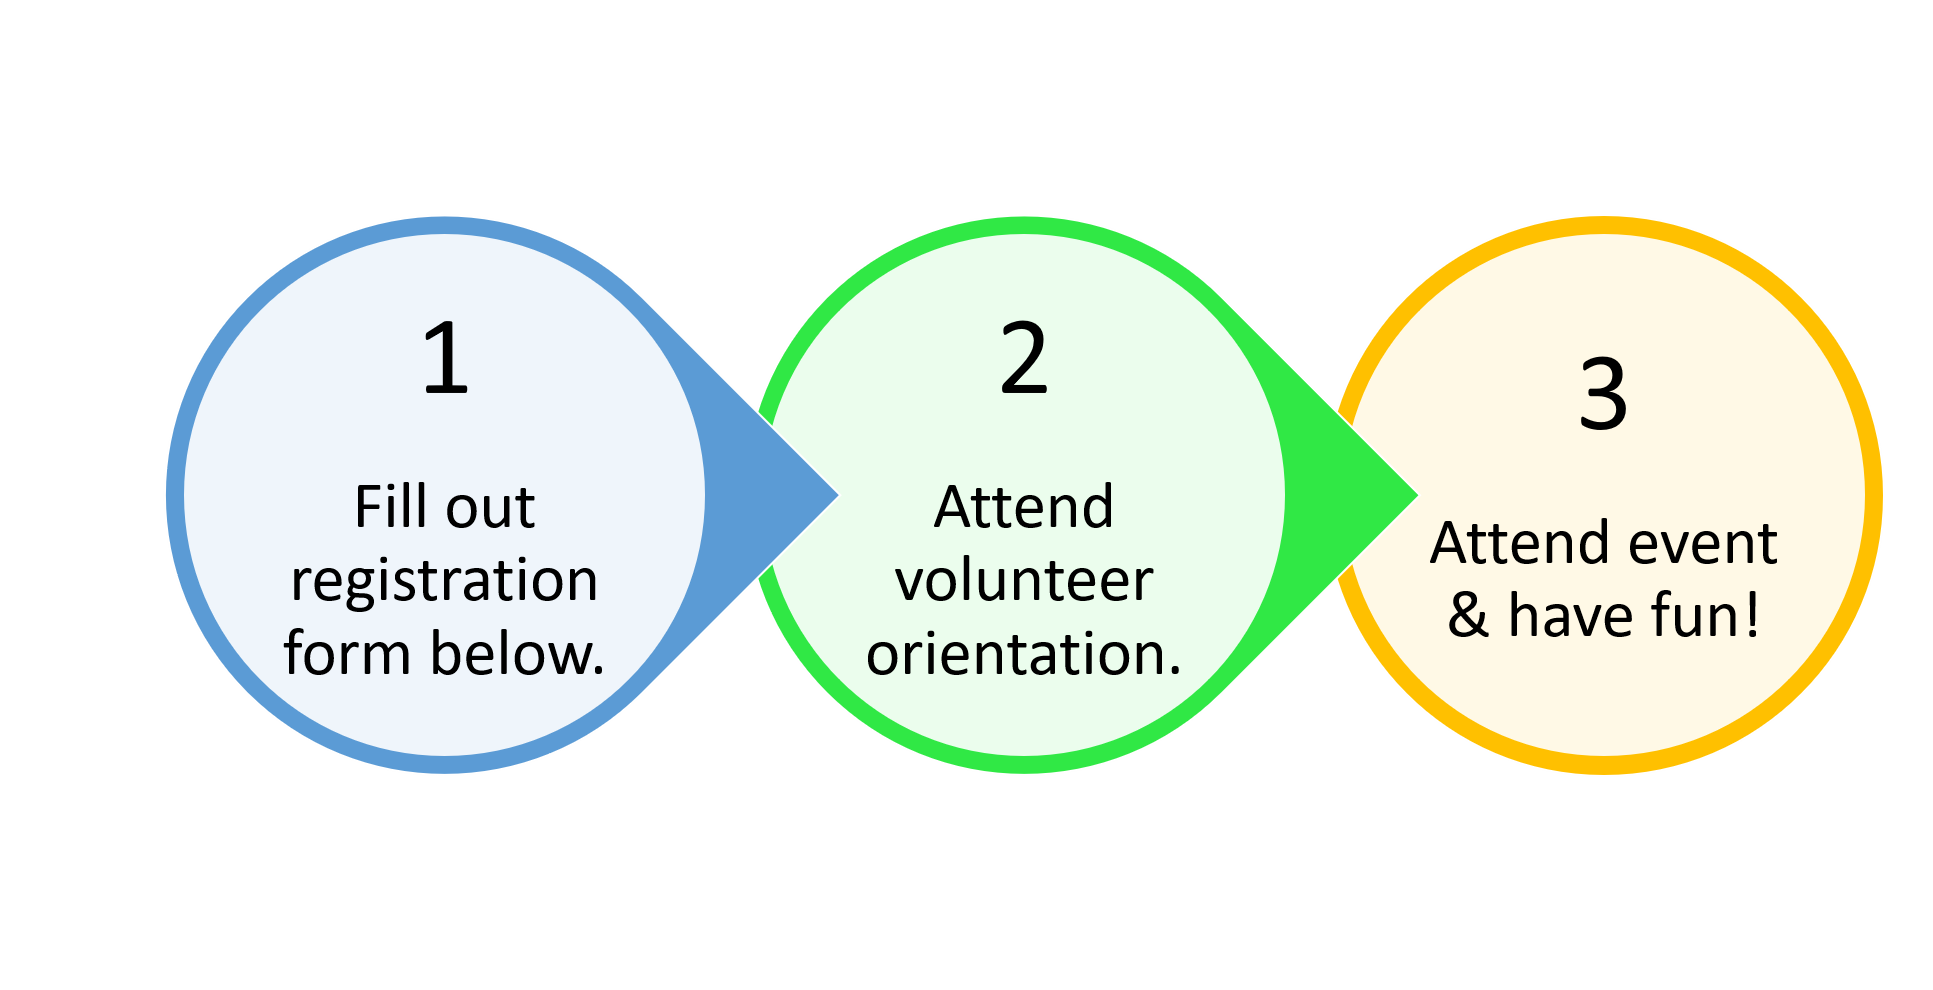 Diagram showing steps to become a volunteer.